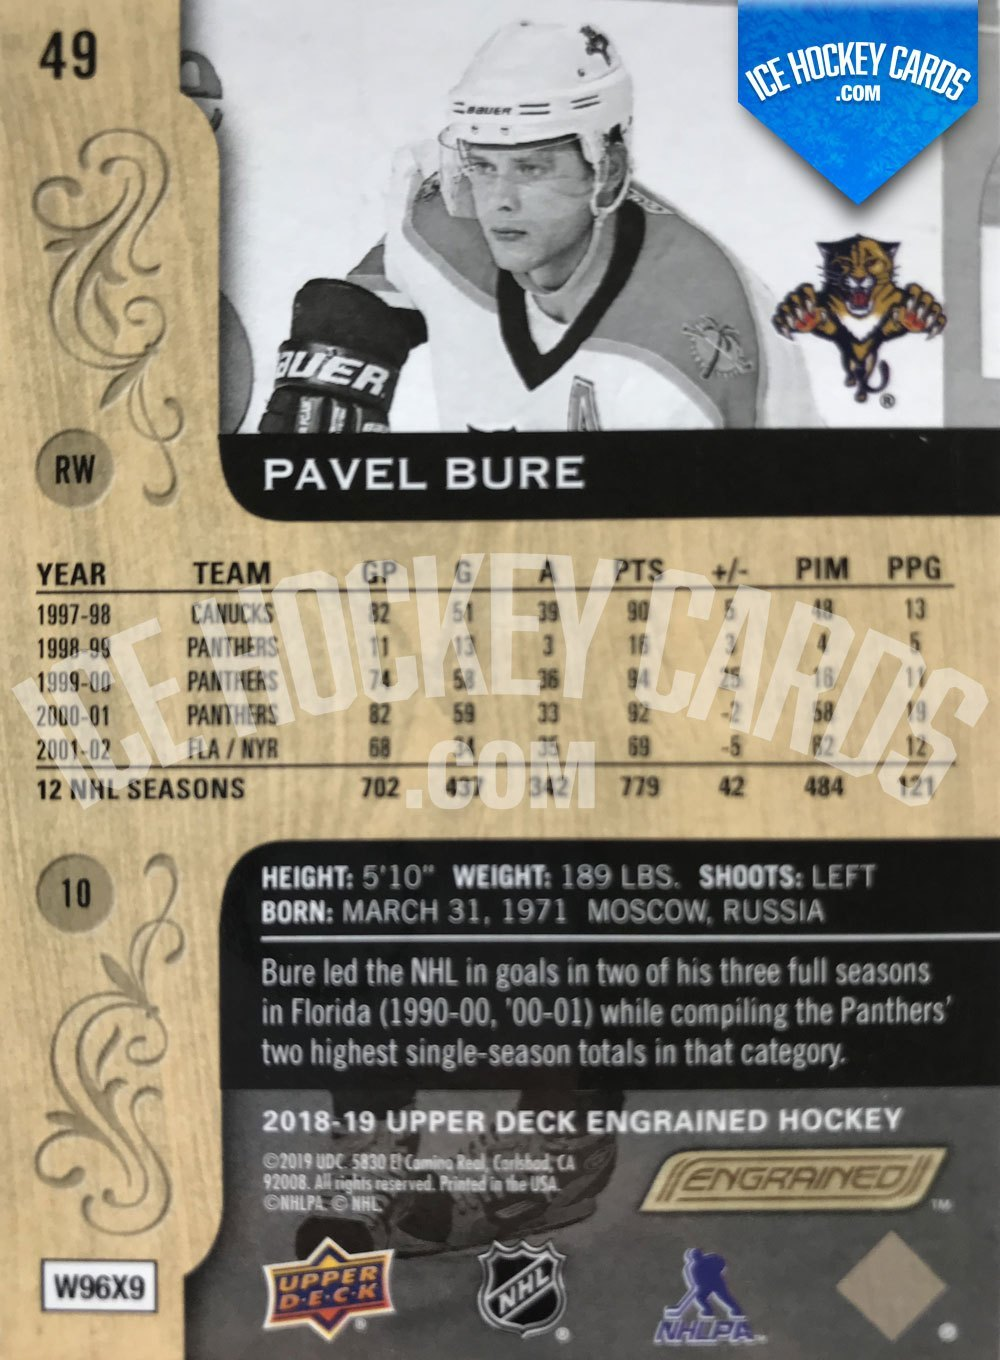 "Upper Deck - Engrained 18-19 - Pavel Bure ""Russian Rocket"" Base Card back"